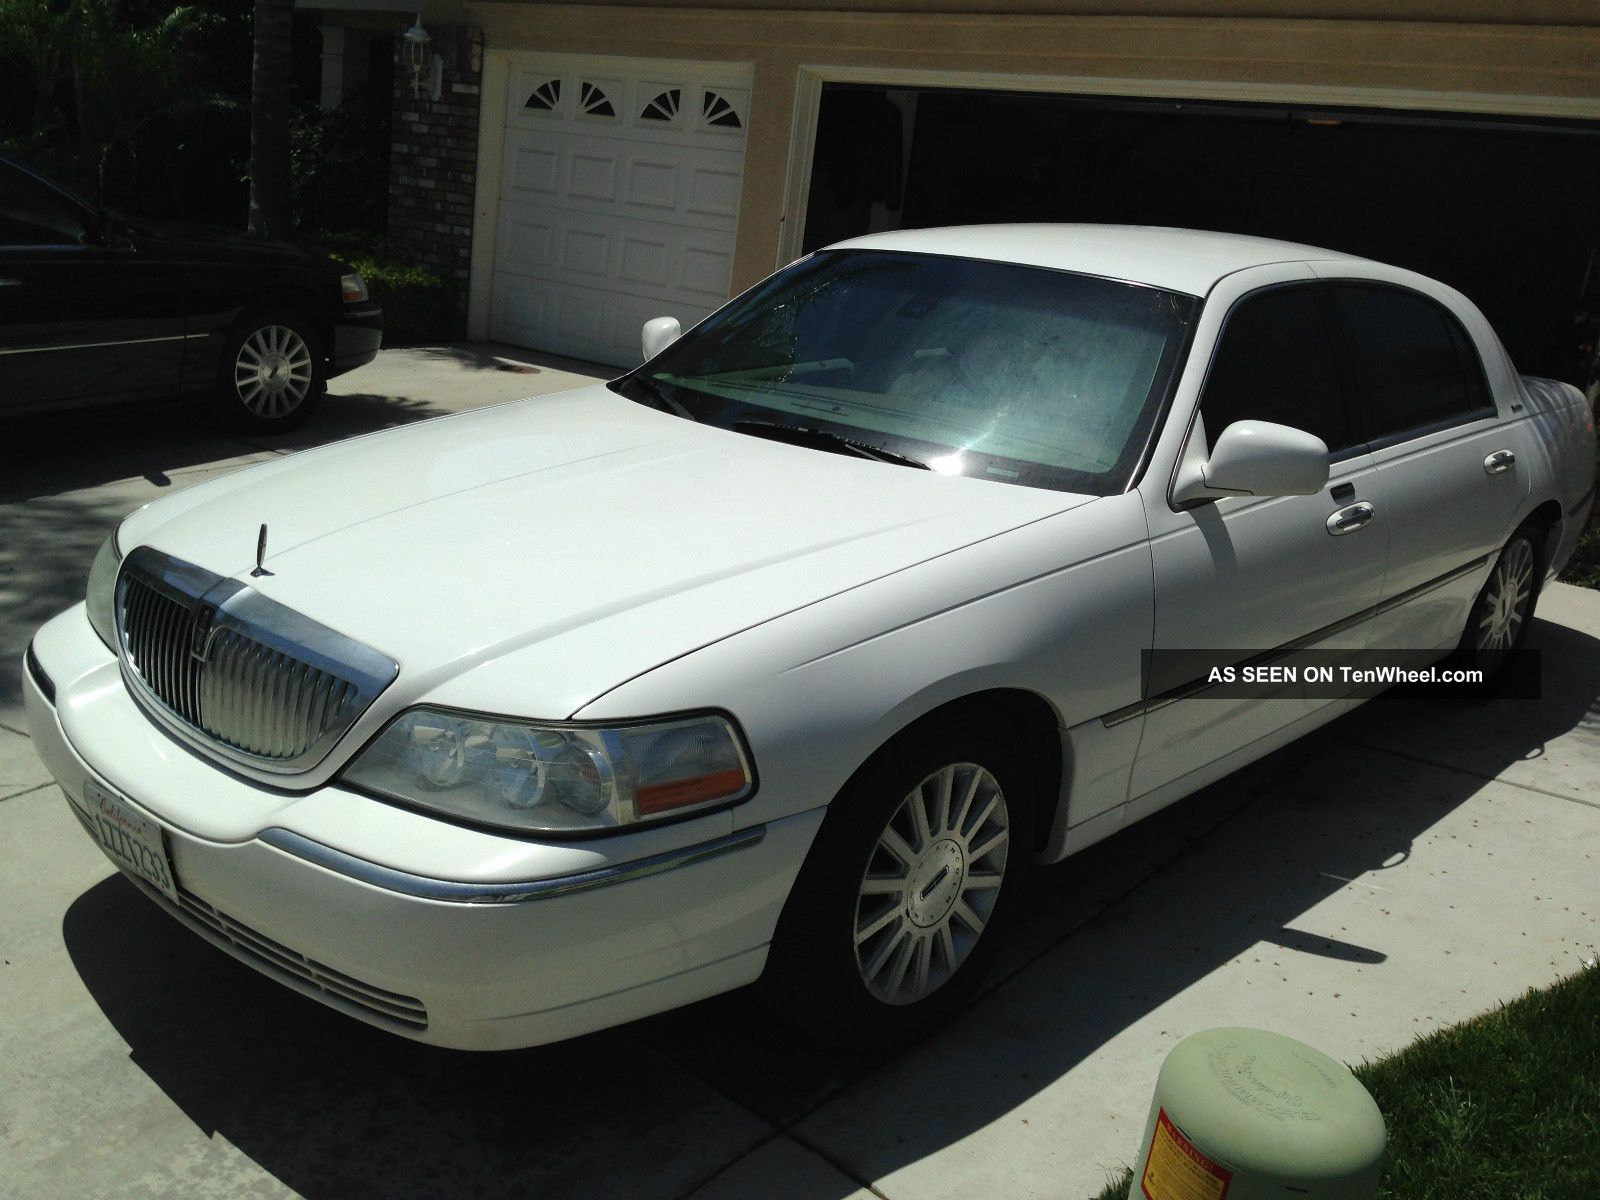 lincoln town certificate tx on car of auto en c carfinder lot e in burgundy dallas south title sale auctions copart online